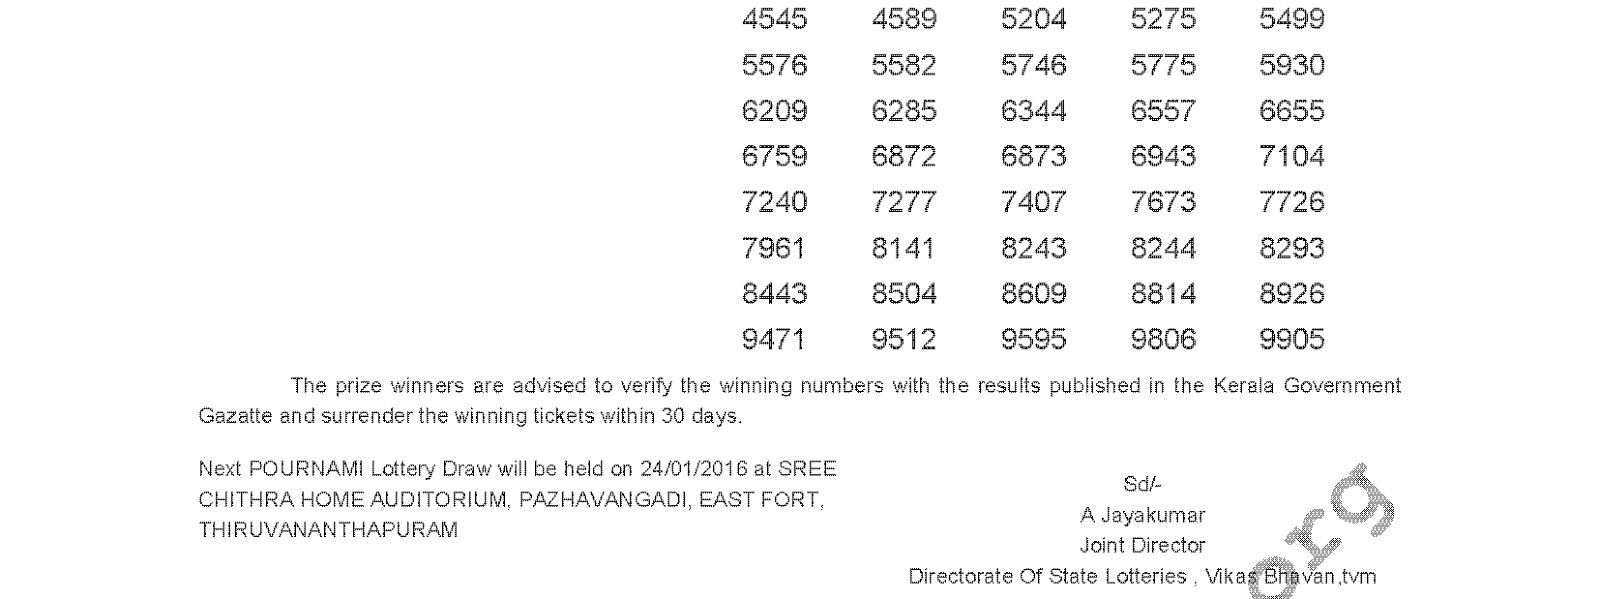 POURNAMI Lottery RN 220 Result 17-01-2016